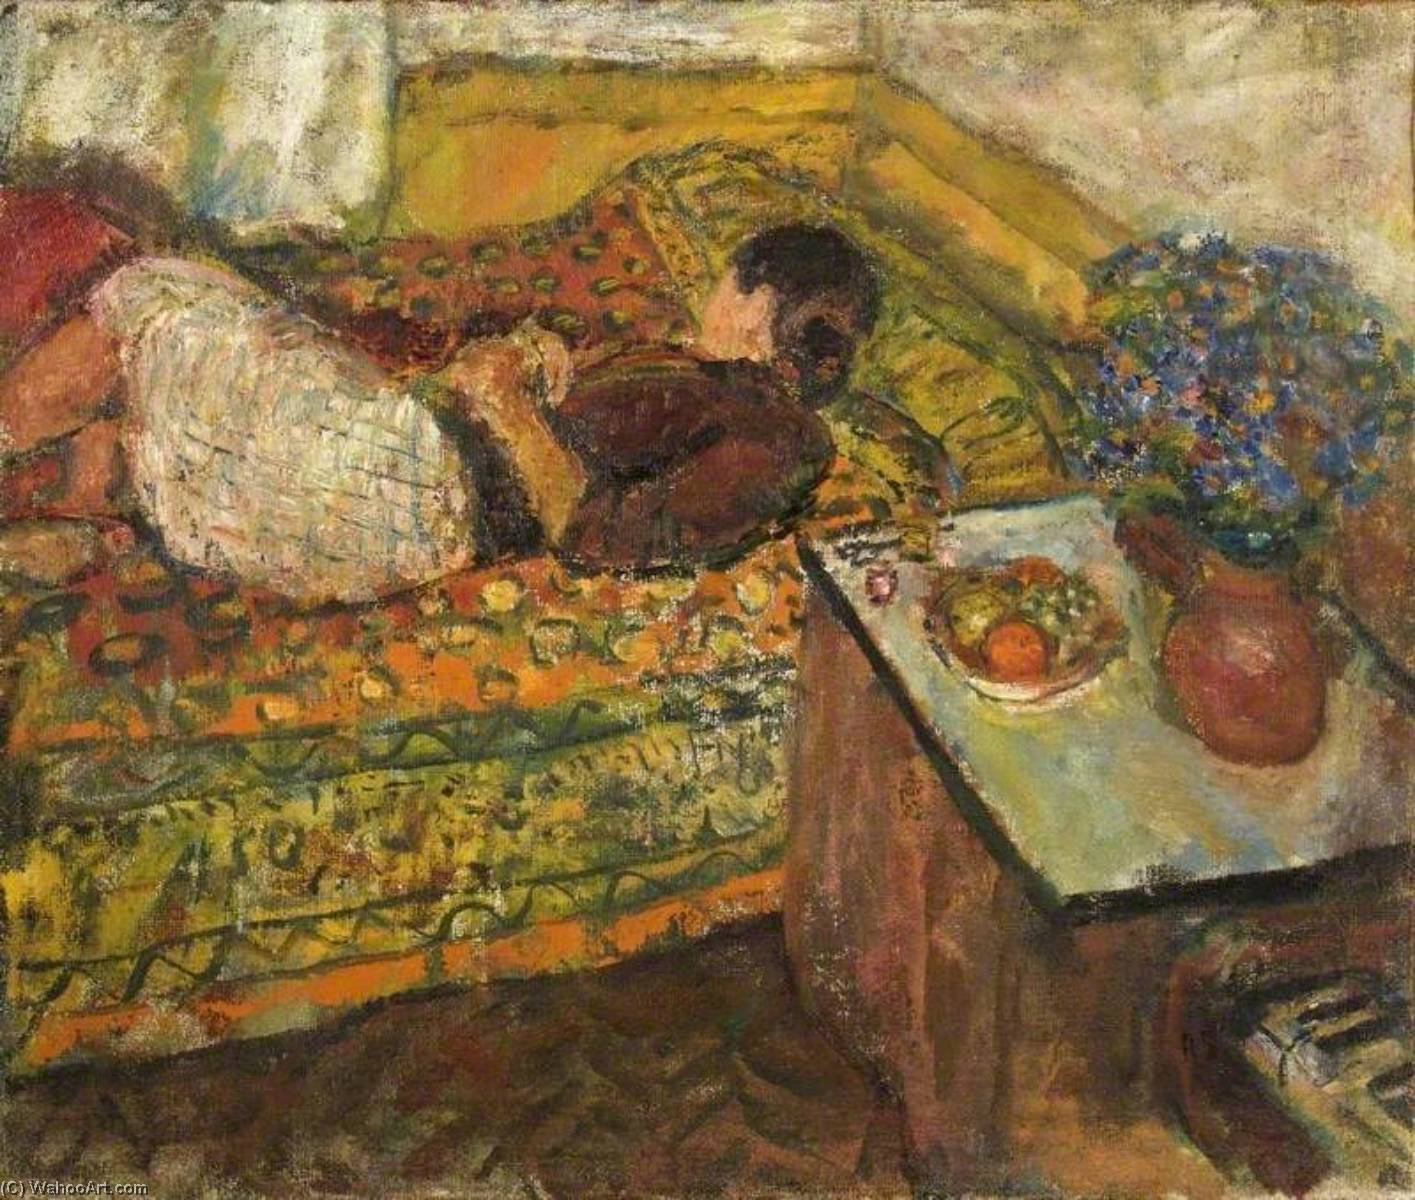 | Siesta von Ruskin Spear | Most-Famous-Paintings.com